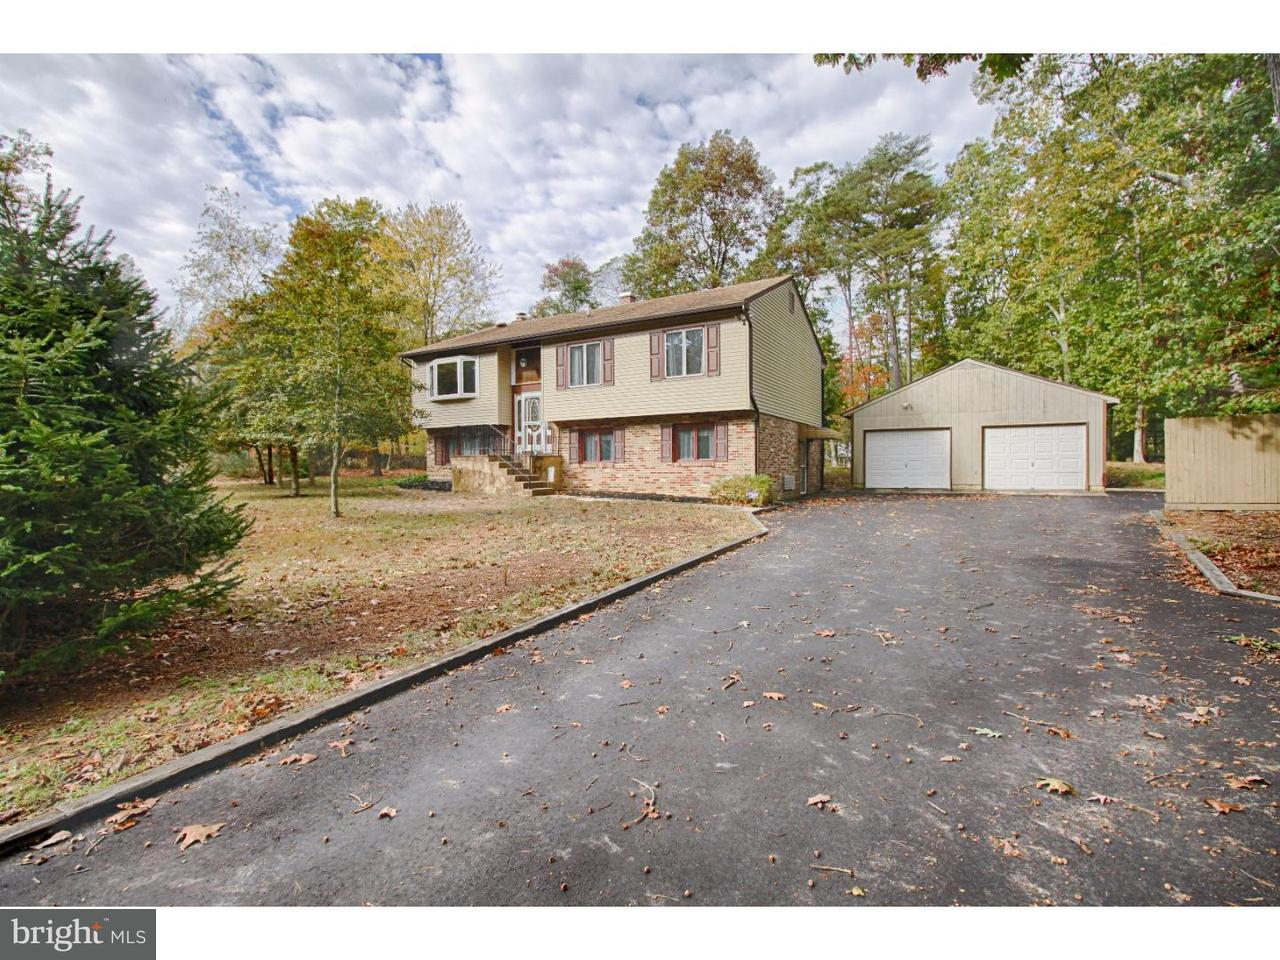 Single Family Home for Sale at 93 OAKSHADE Road Tabernacle Twp, New Jersey 08088 United States